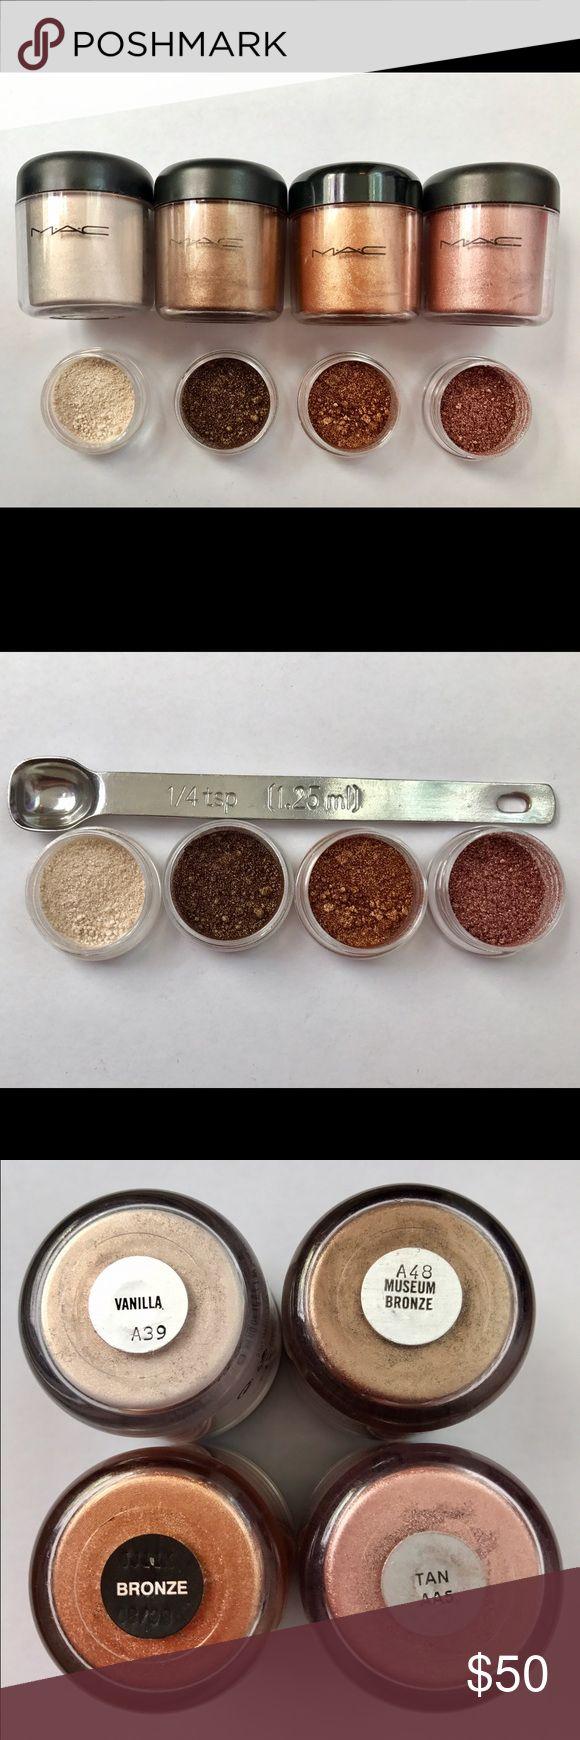 Rare MAC  Sample Set 100% Authentic (1/4 teaspoon 🍂This MAC Pigment  sample set includes 1/4 teaspoon of each of the following pigments: Vanilla, Bronze, Tan, Museum Bronze, ! This is a perfect way to try out Authentic MAC Pigments without spending a fortune on them. These Pigments are perfect for any occasion! Get them while they last! SHIPS THE NEXT DAY! Pigments come in 3g BPA Free jars! MAC Cosmetics Makeup Eyeshadow